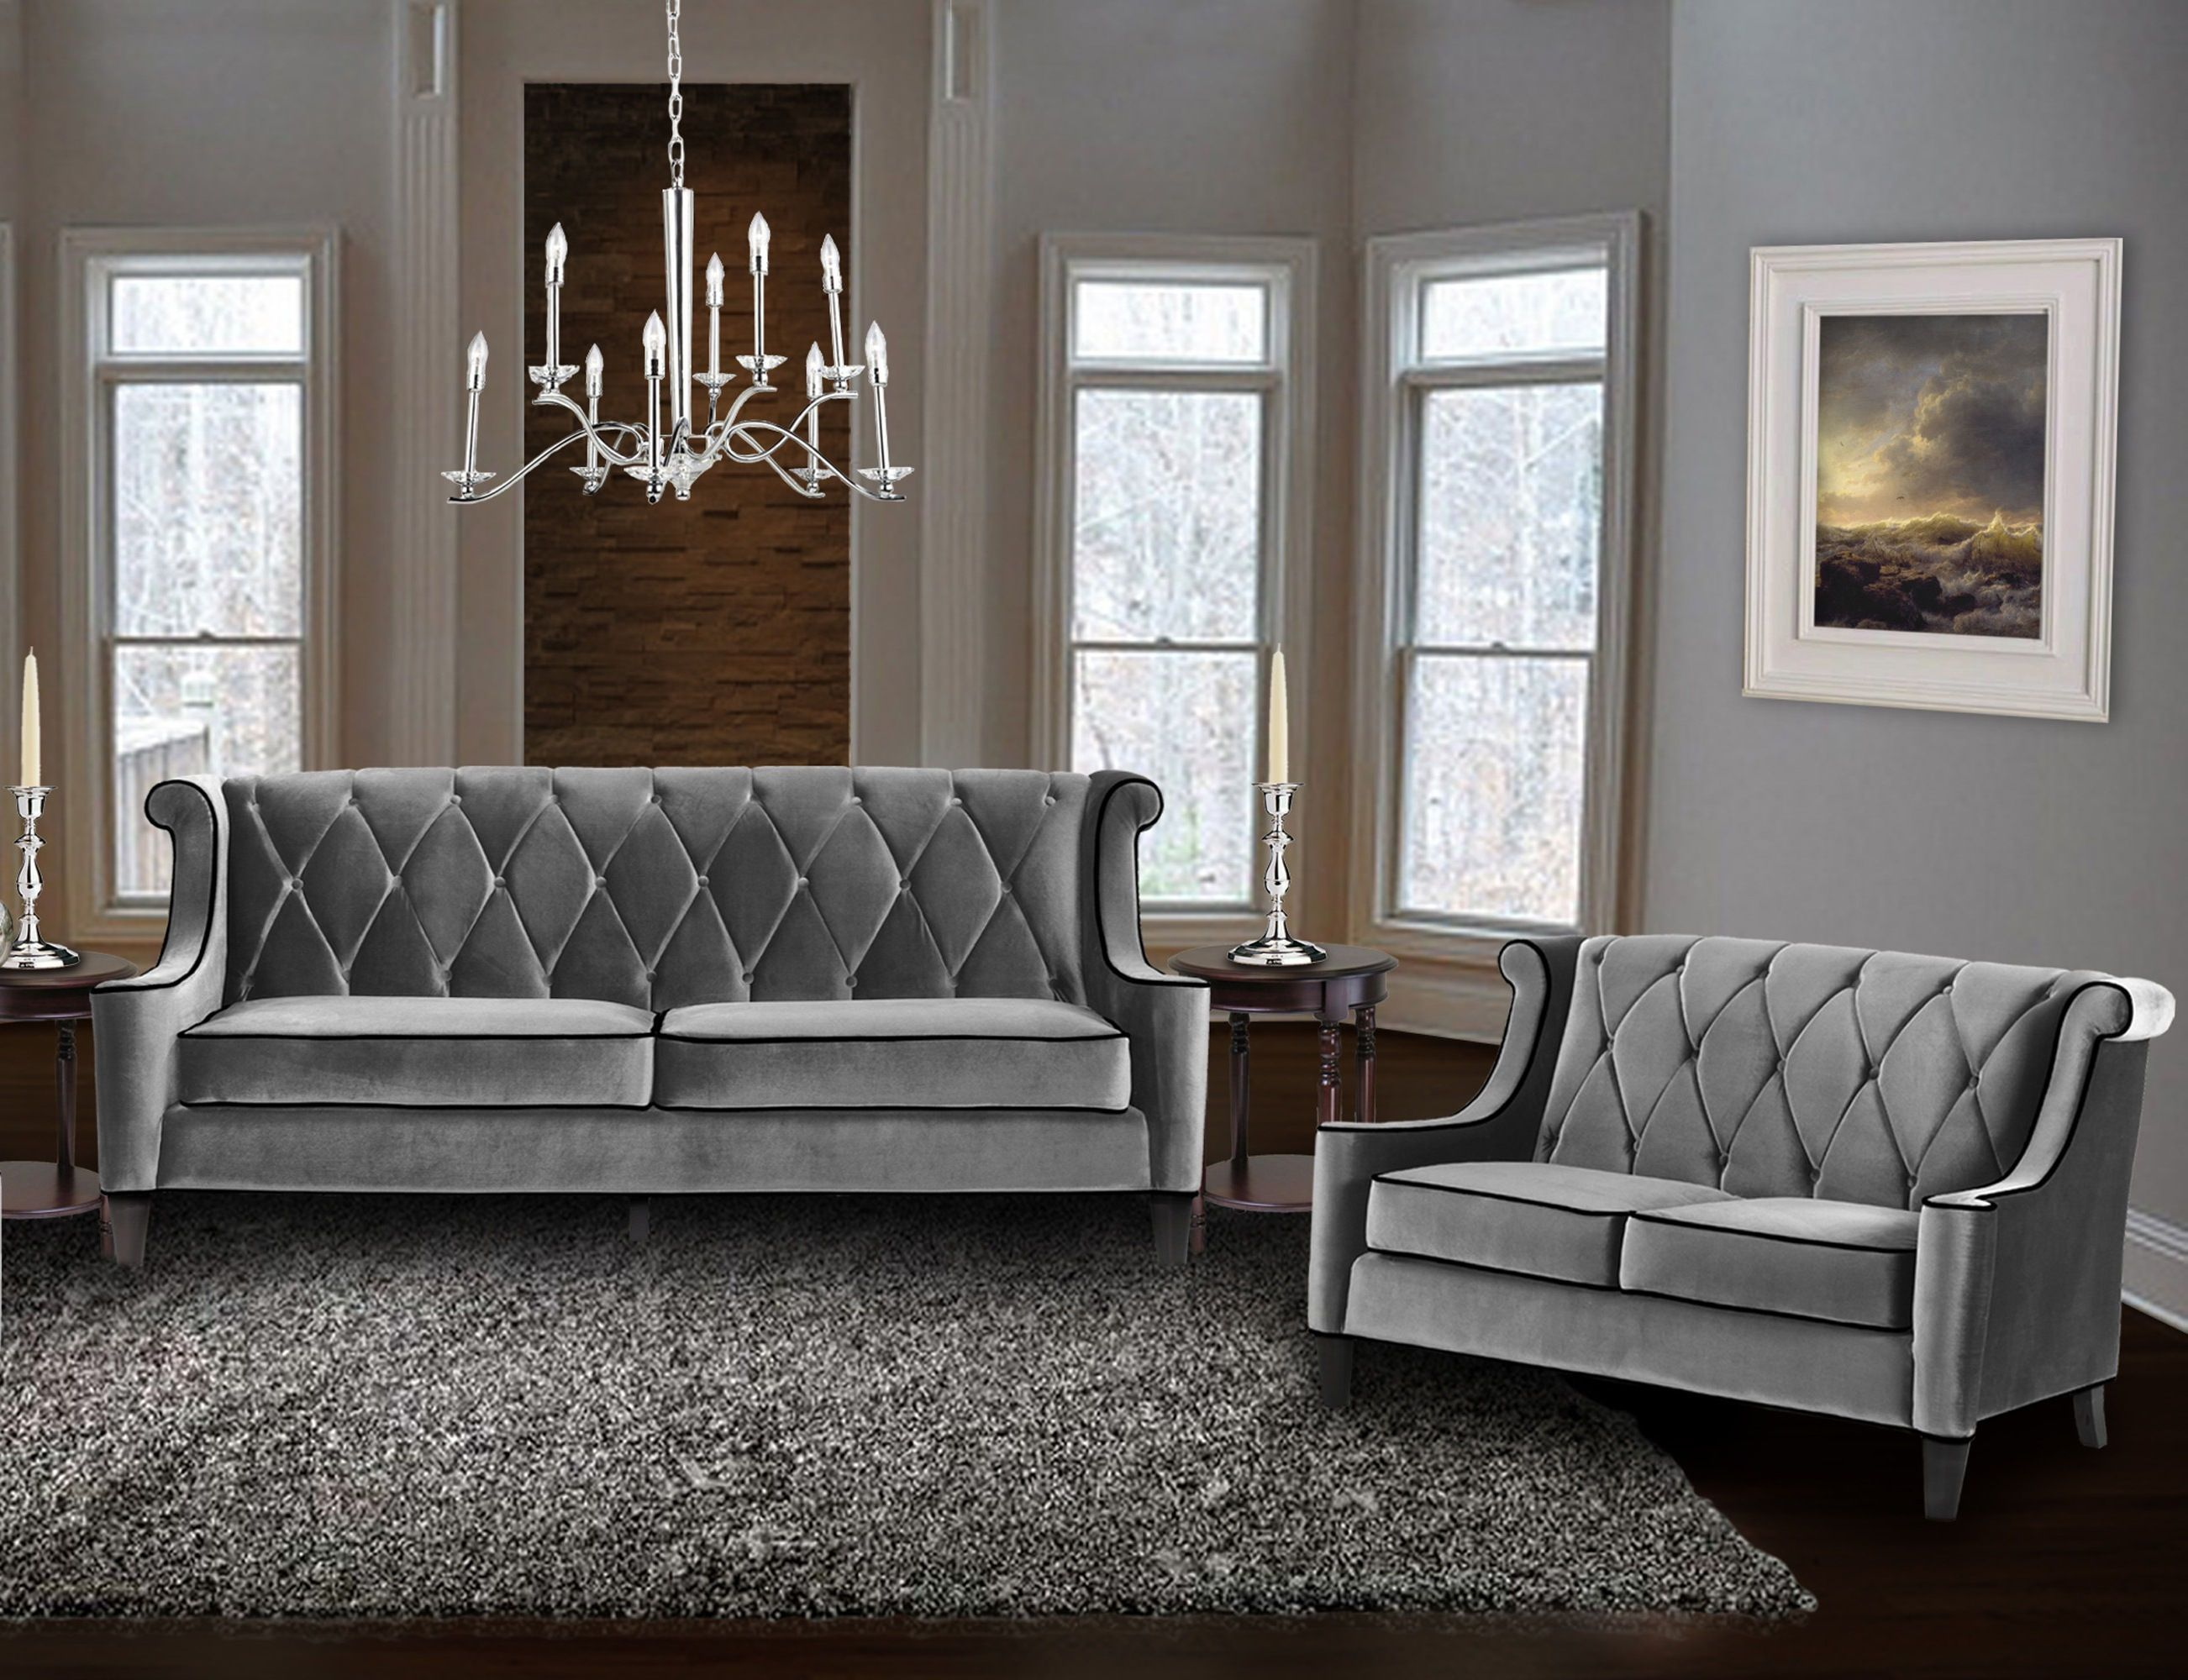 mood living signature set room by indigo gallery media ashley design c bavello